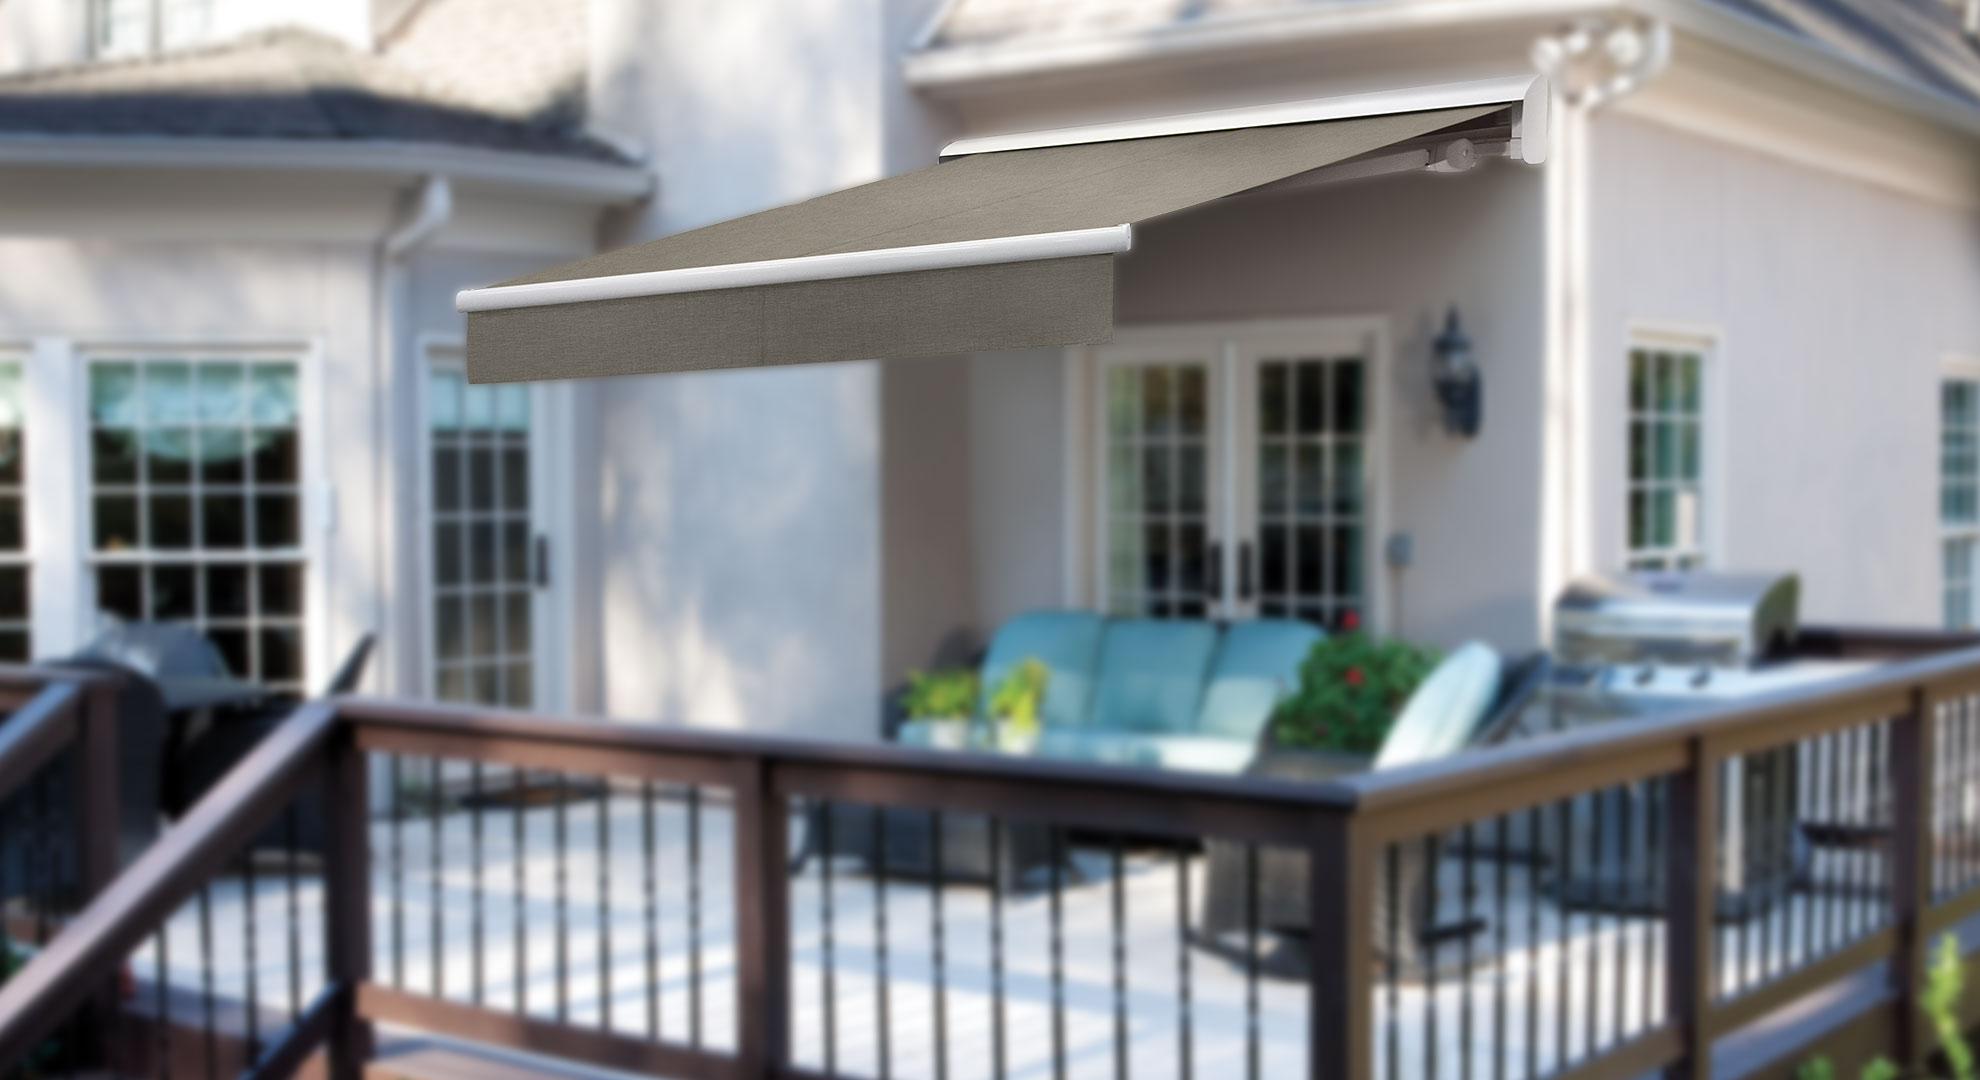 Retractable Awnings And More From Solair Shade Solutions ...